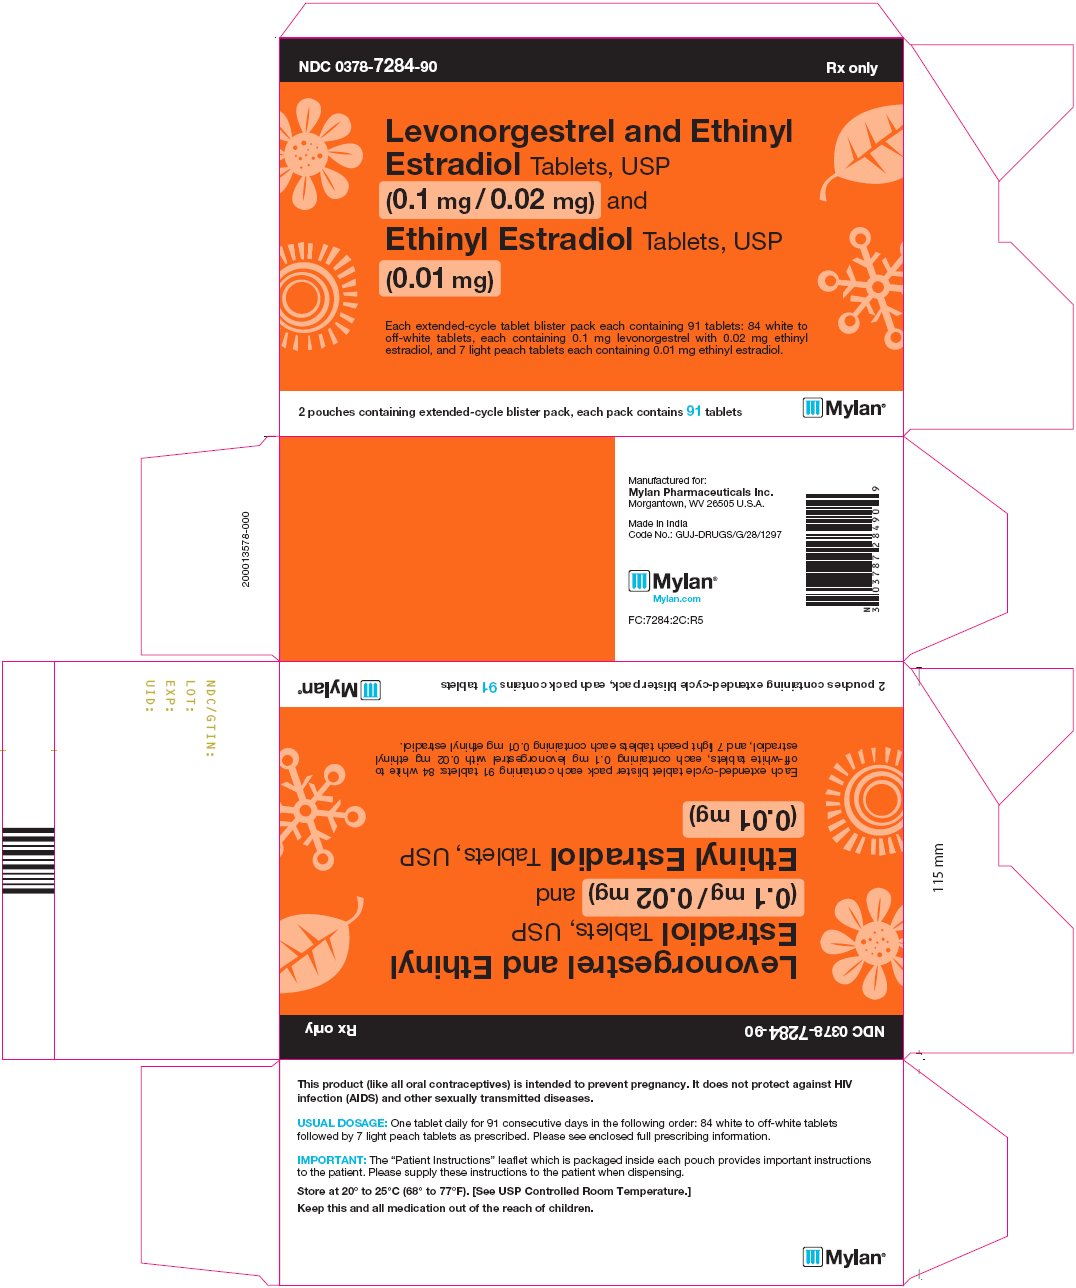 Levonorgestrel and Ethinyl Estradiol Tablets, USP (0.1 mg/ 0.02 mg) and Ethinyl Estradiol Tablets, USP (0.01 mg) Carton Label